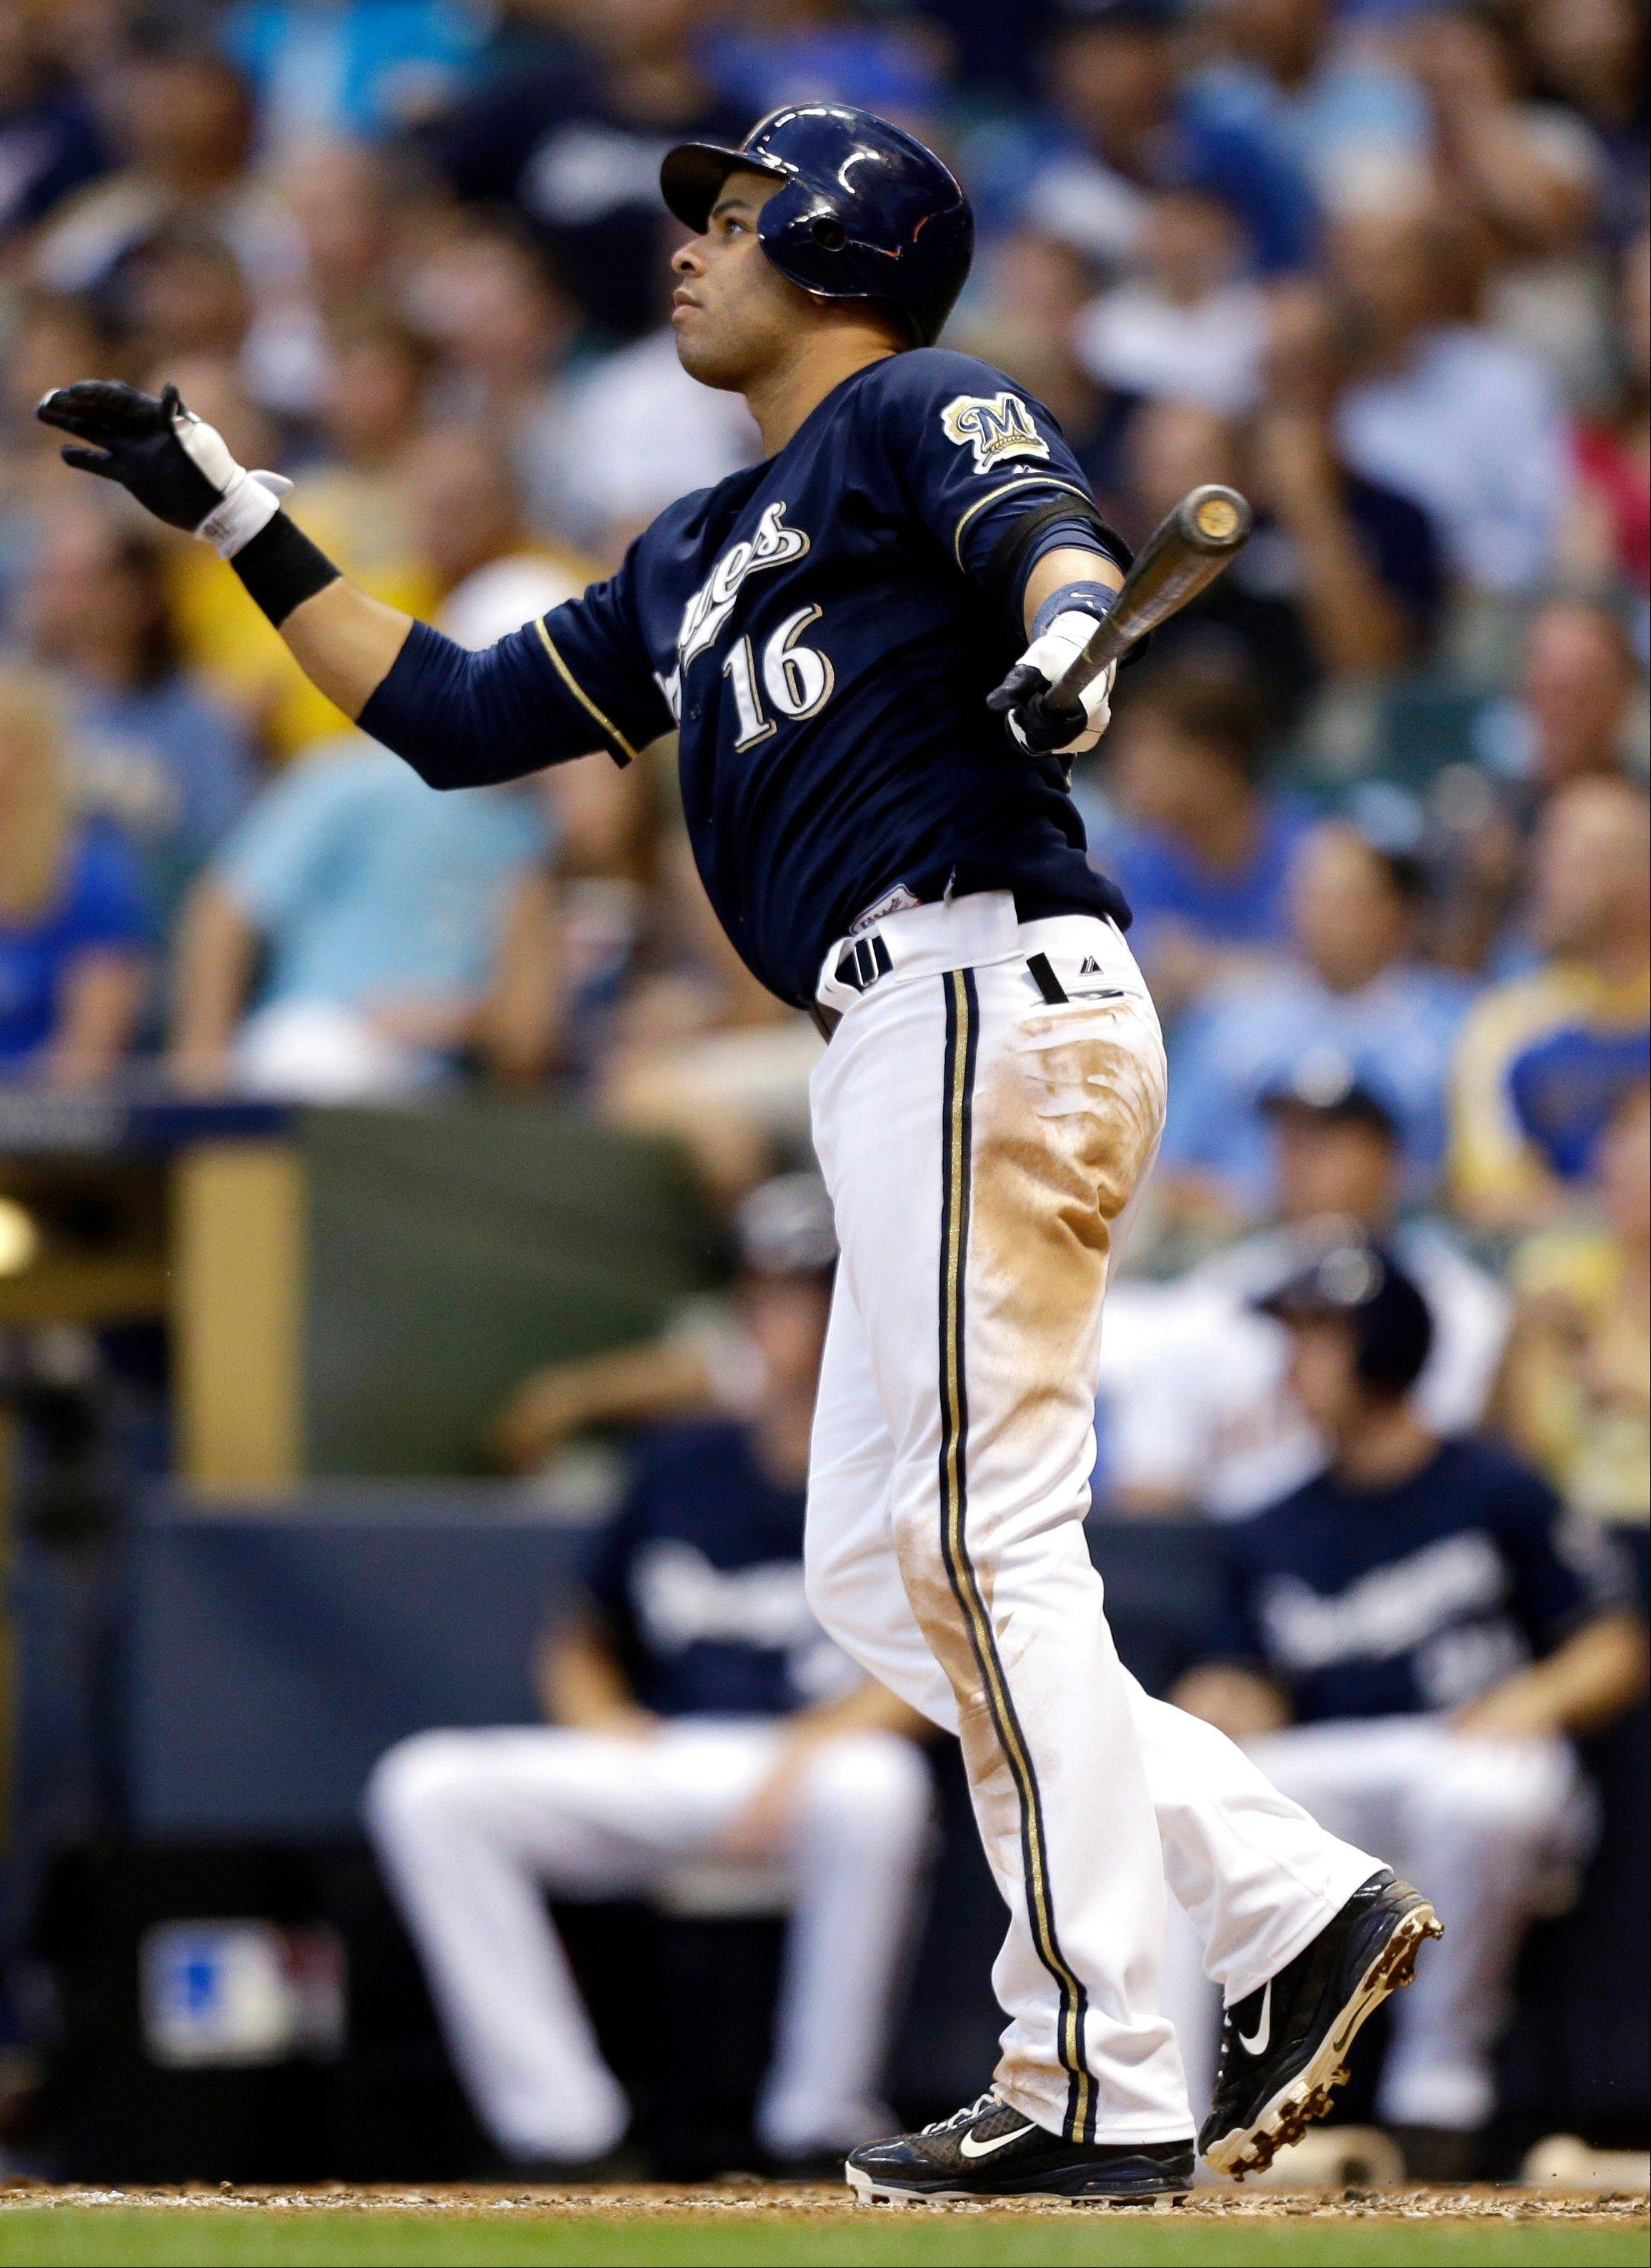 The Brewers� Aramis Ramirez watches his three-run home run leave the park against the Houston Astros during the third inning Tuesday in Milwaukee.